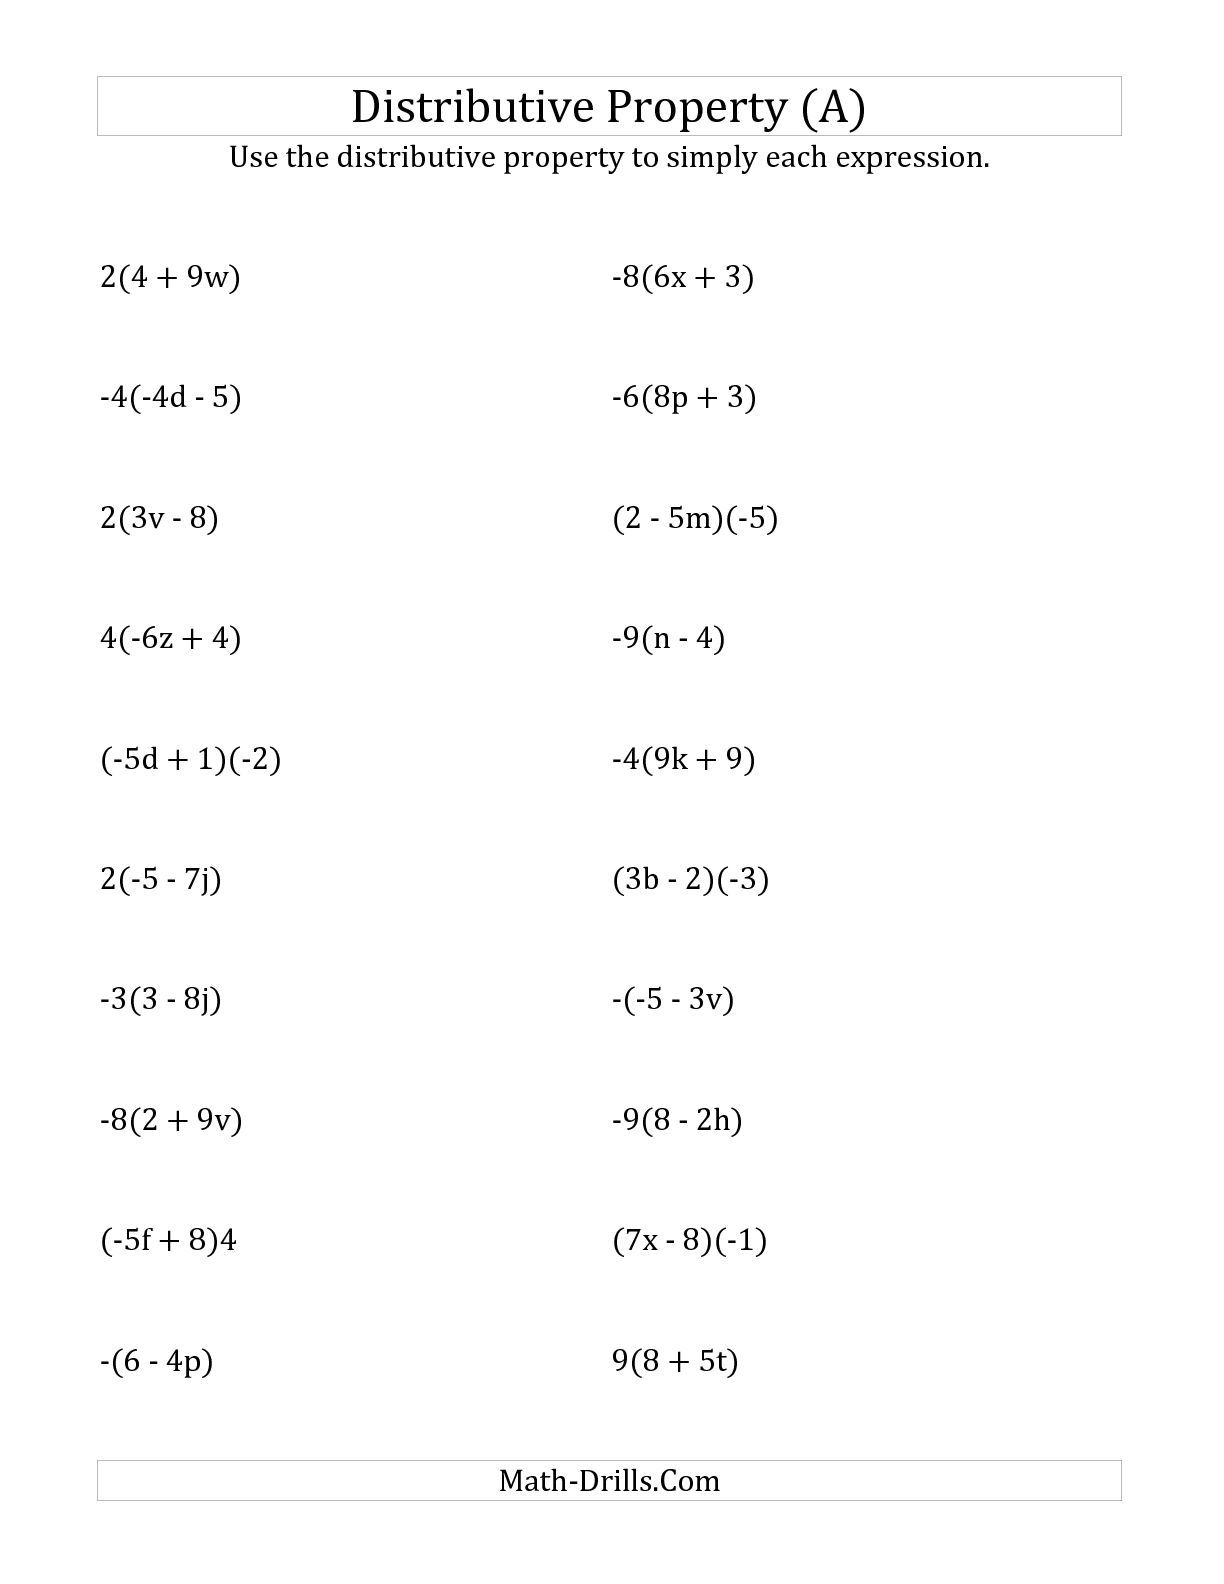 The Using The Distributive Property Answers Do Not Include Exponents A Math Worksheet From